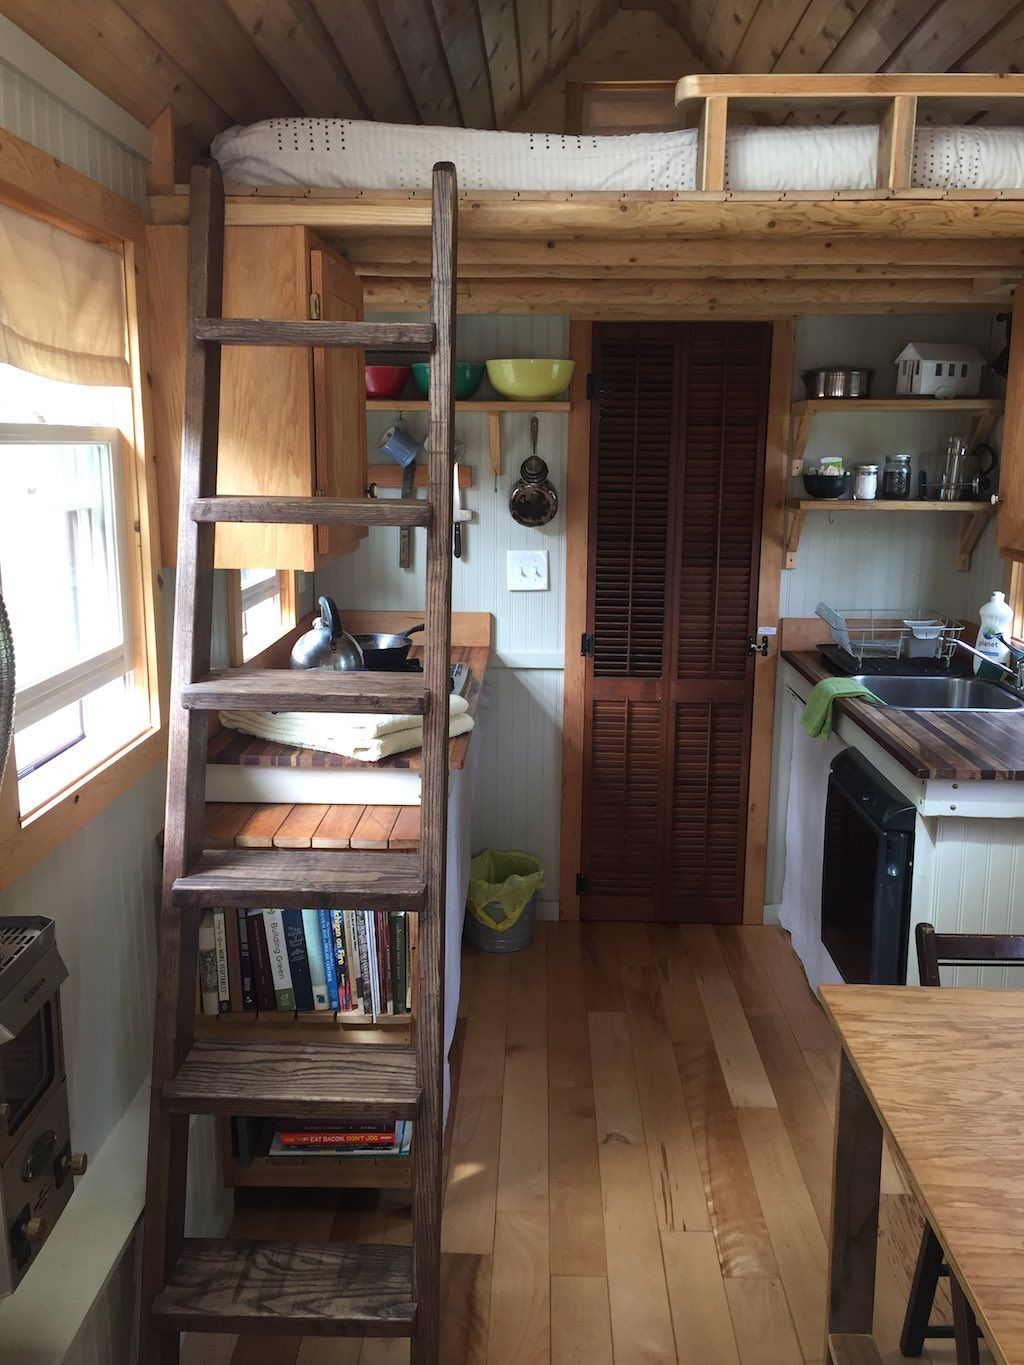 Ms. Mighty | Tiny House Swoon